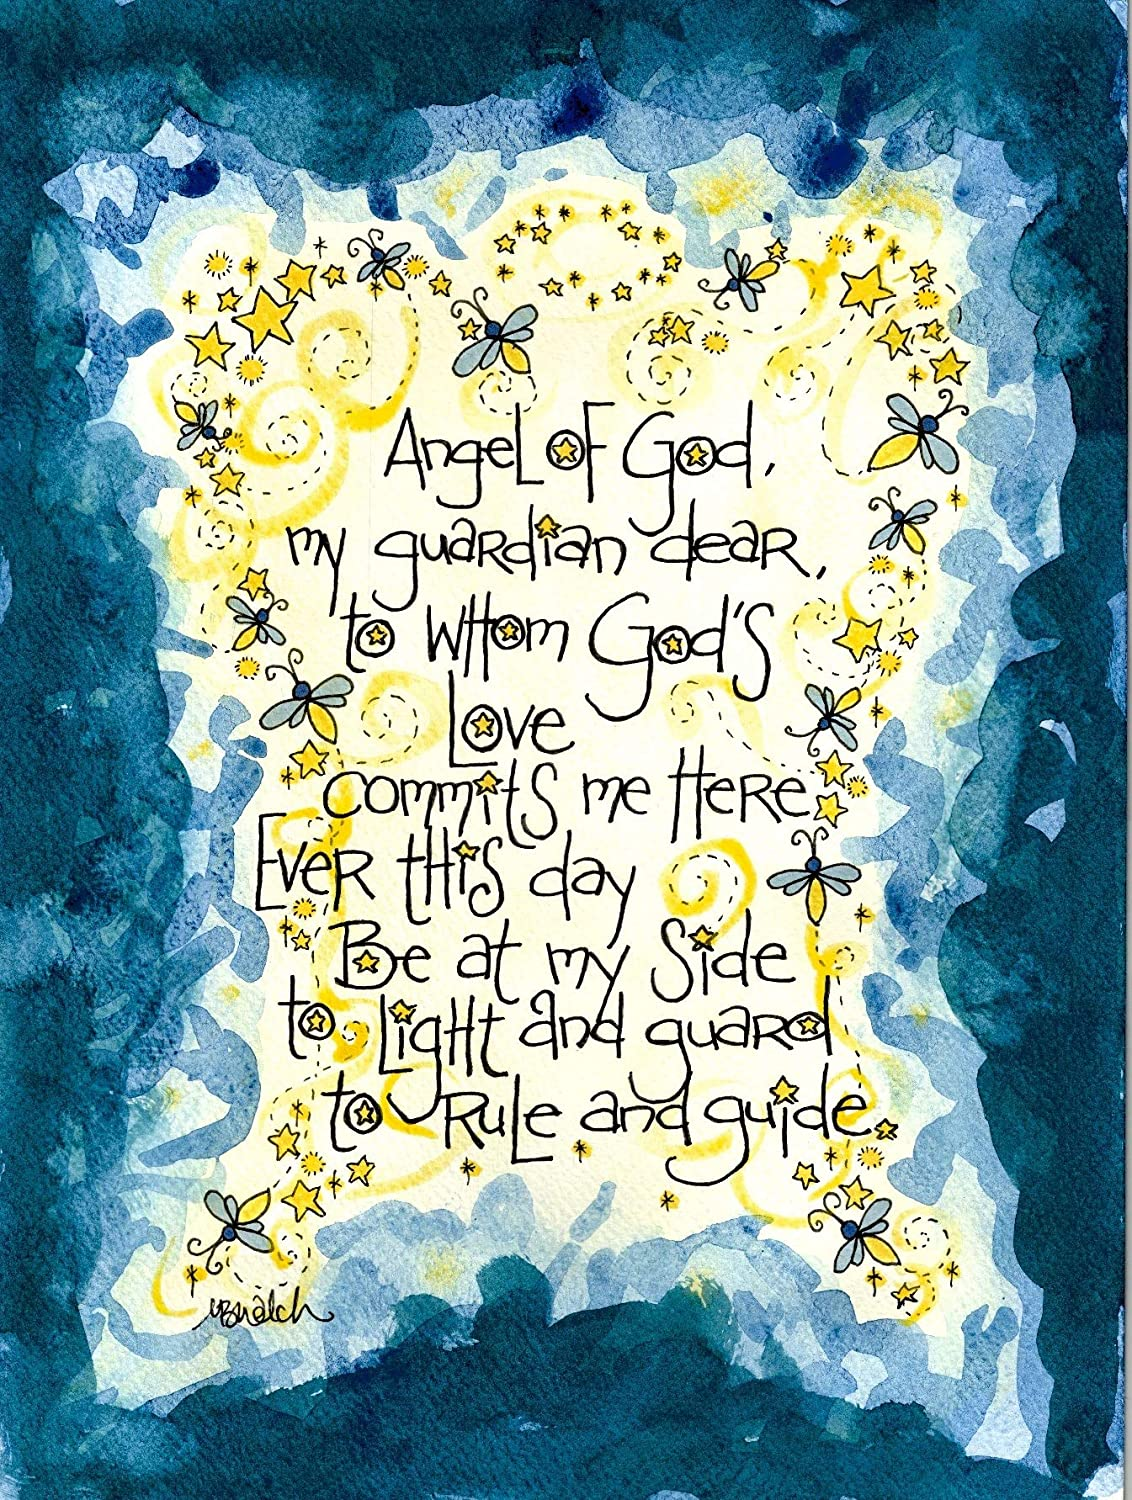 Baptism Gift - Guardian Angel Prayer Art by Dovetail Ink (8x10 inches)